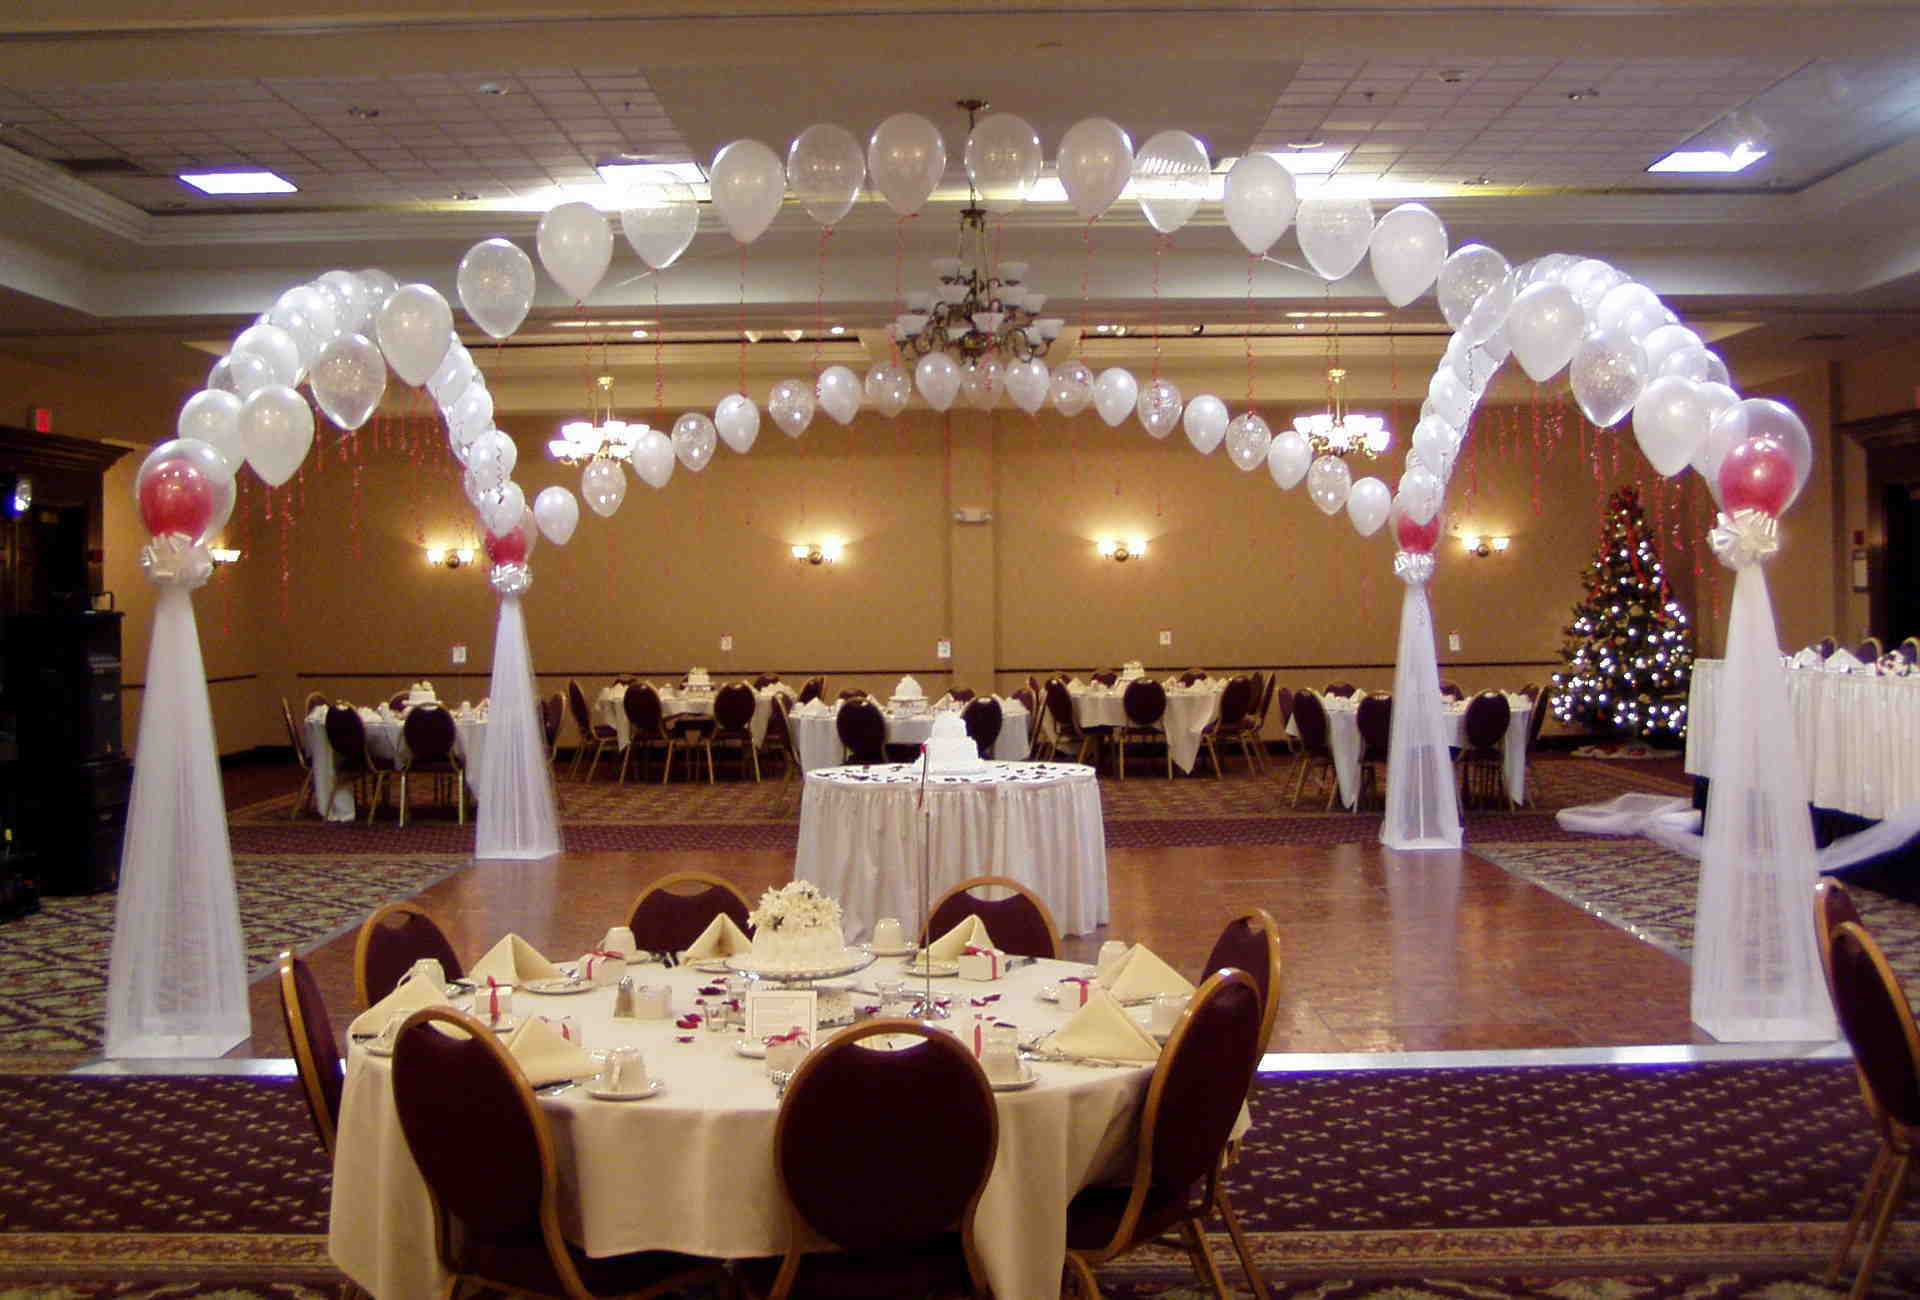 Wedding Table Decorations Lovely Weddings Decorations Of Delightful 41 Ideas Wedding Table Decorations